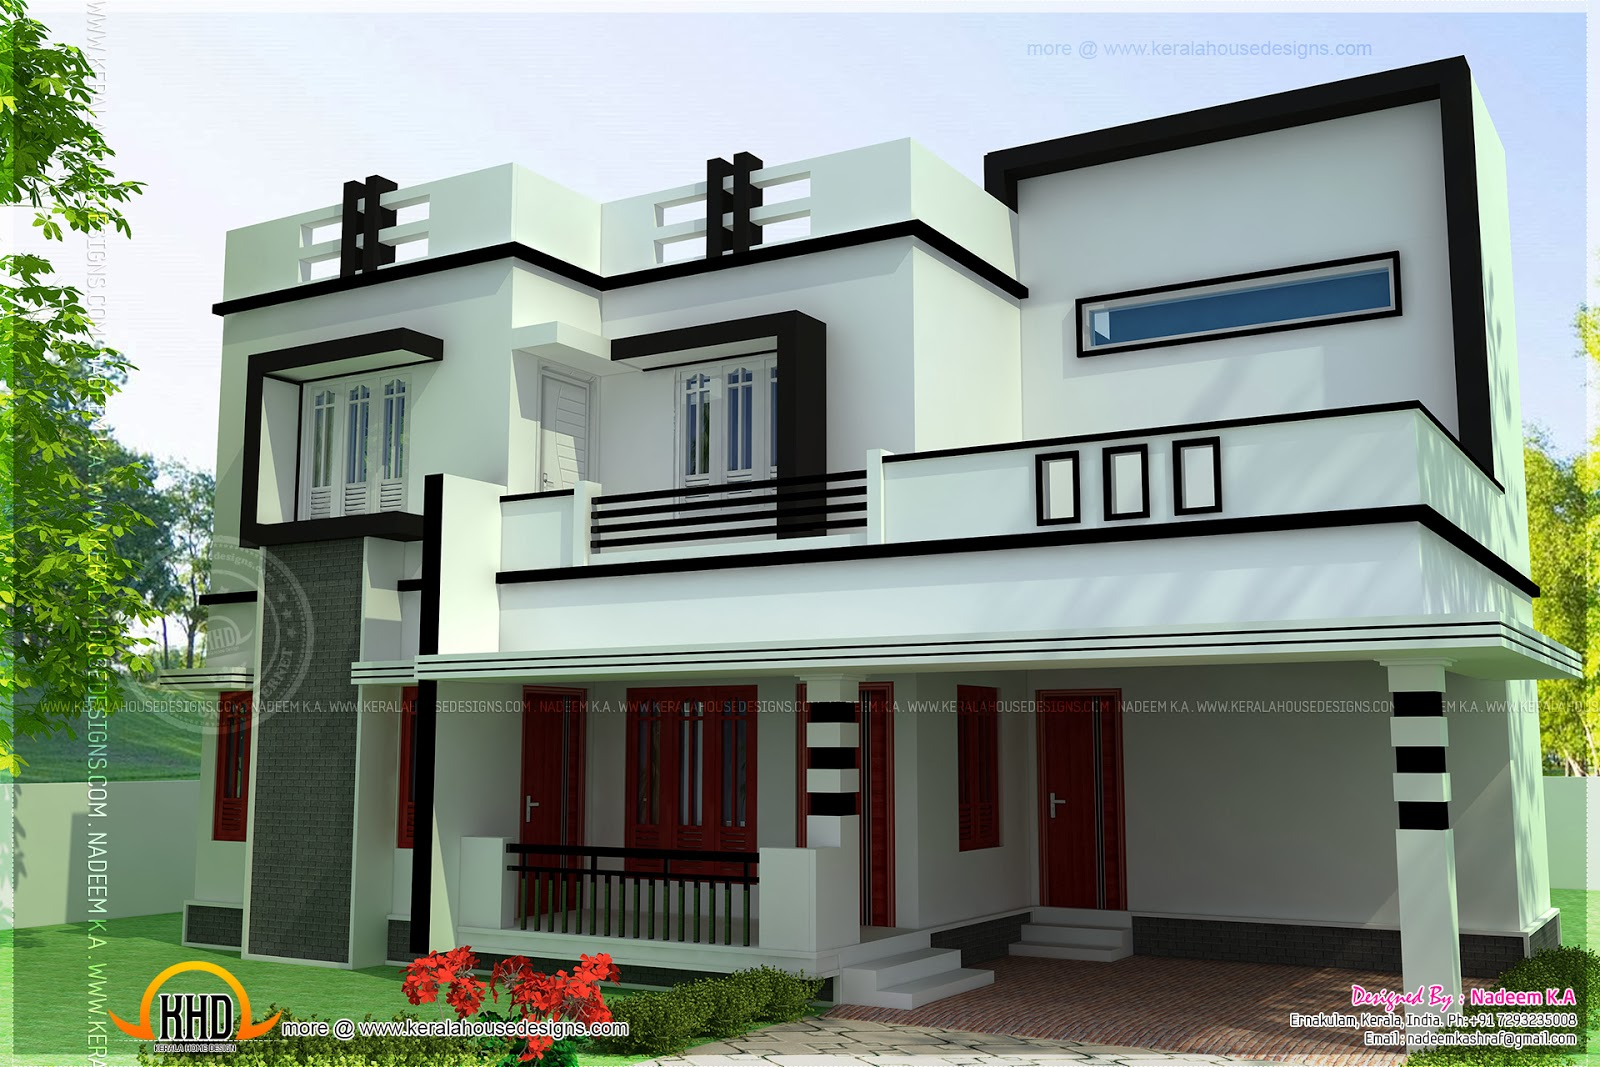 Flat roof 4 bedroom modern house kerala home design and for Modern house 3